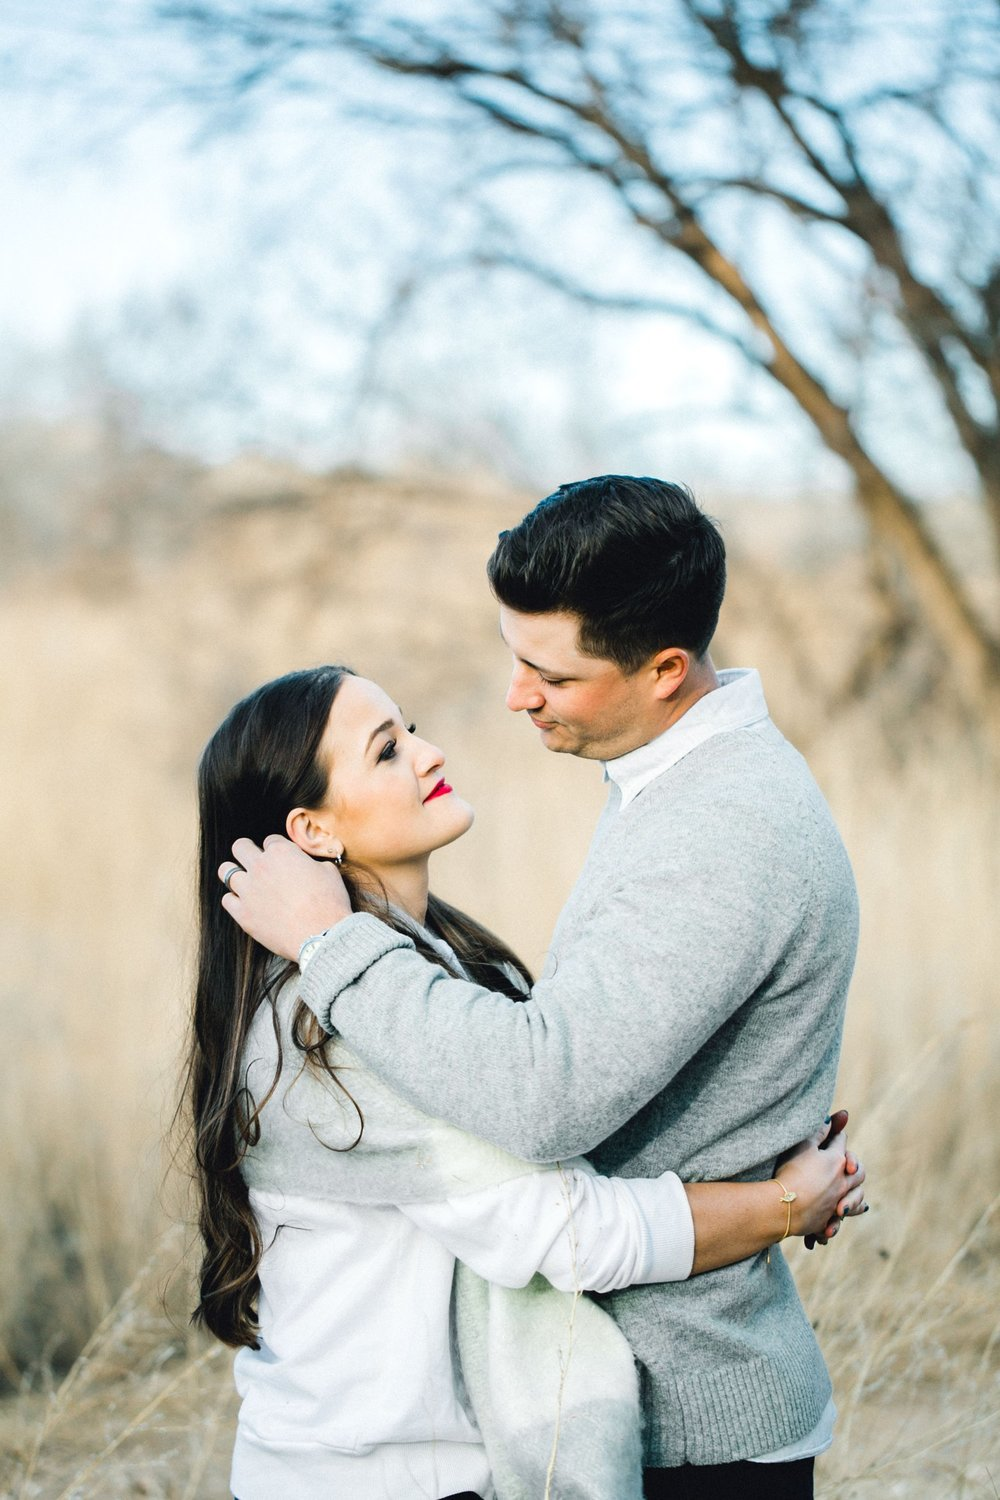 Steven-and-jenna-taubena-lubbock-texas-photographer_0034.jpg